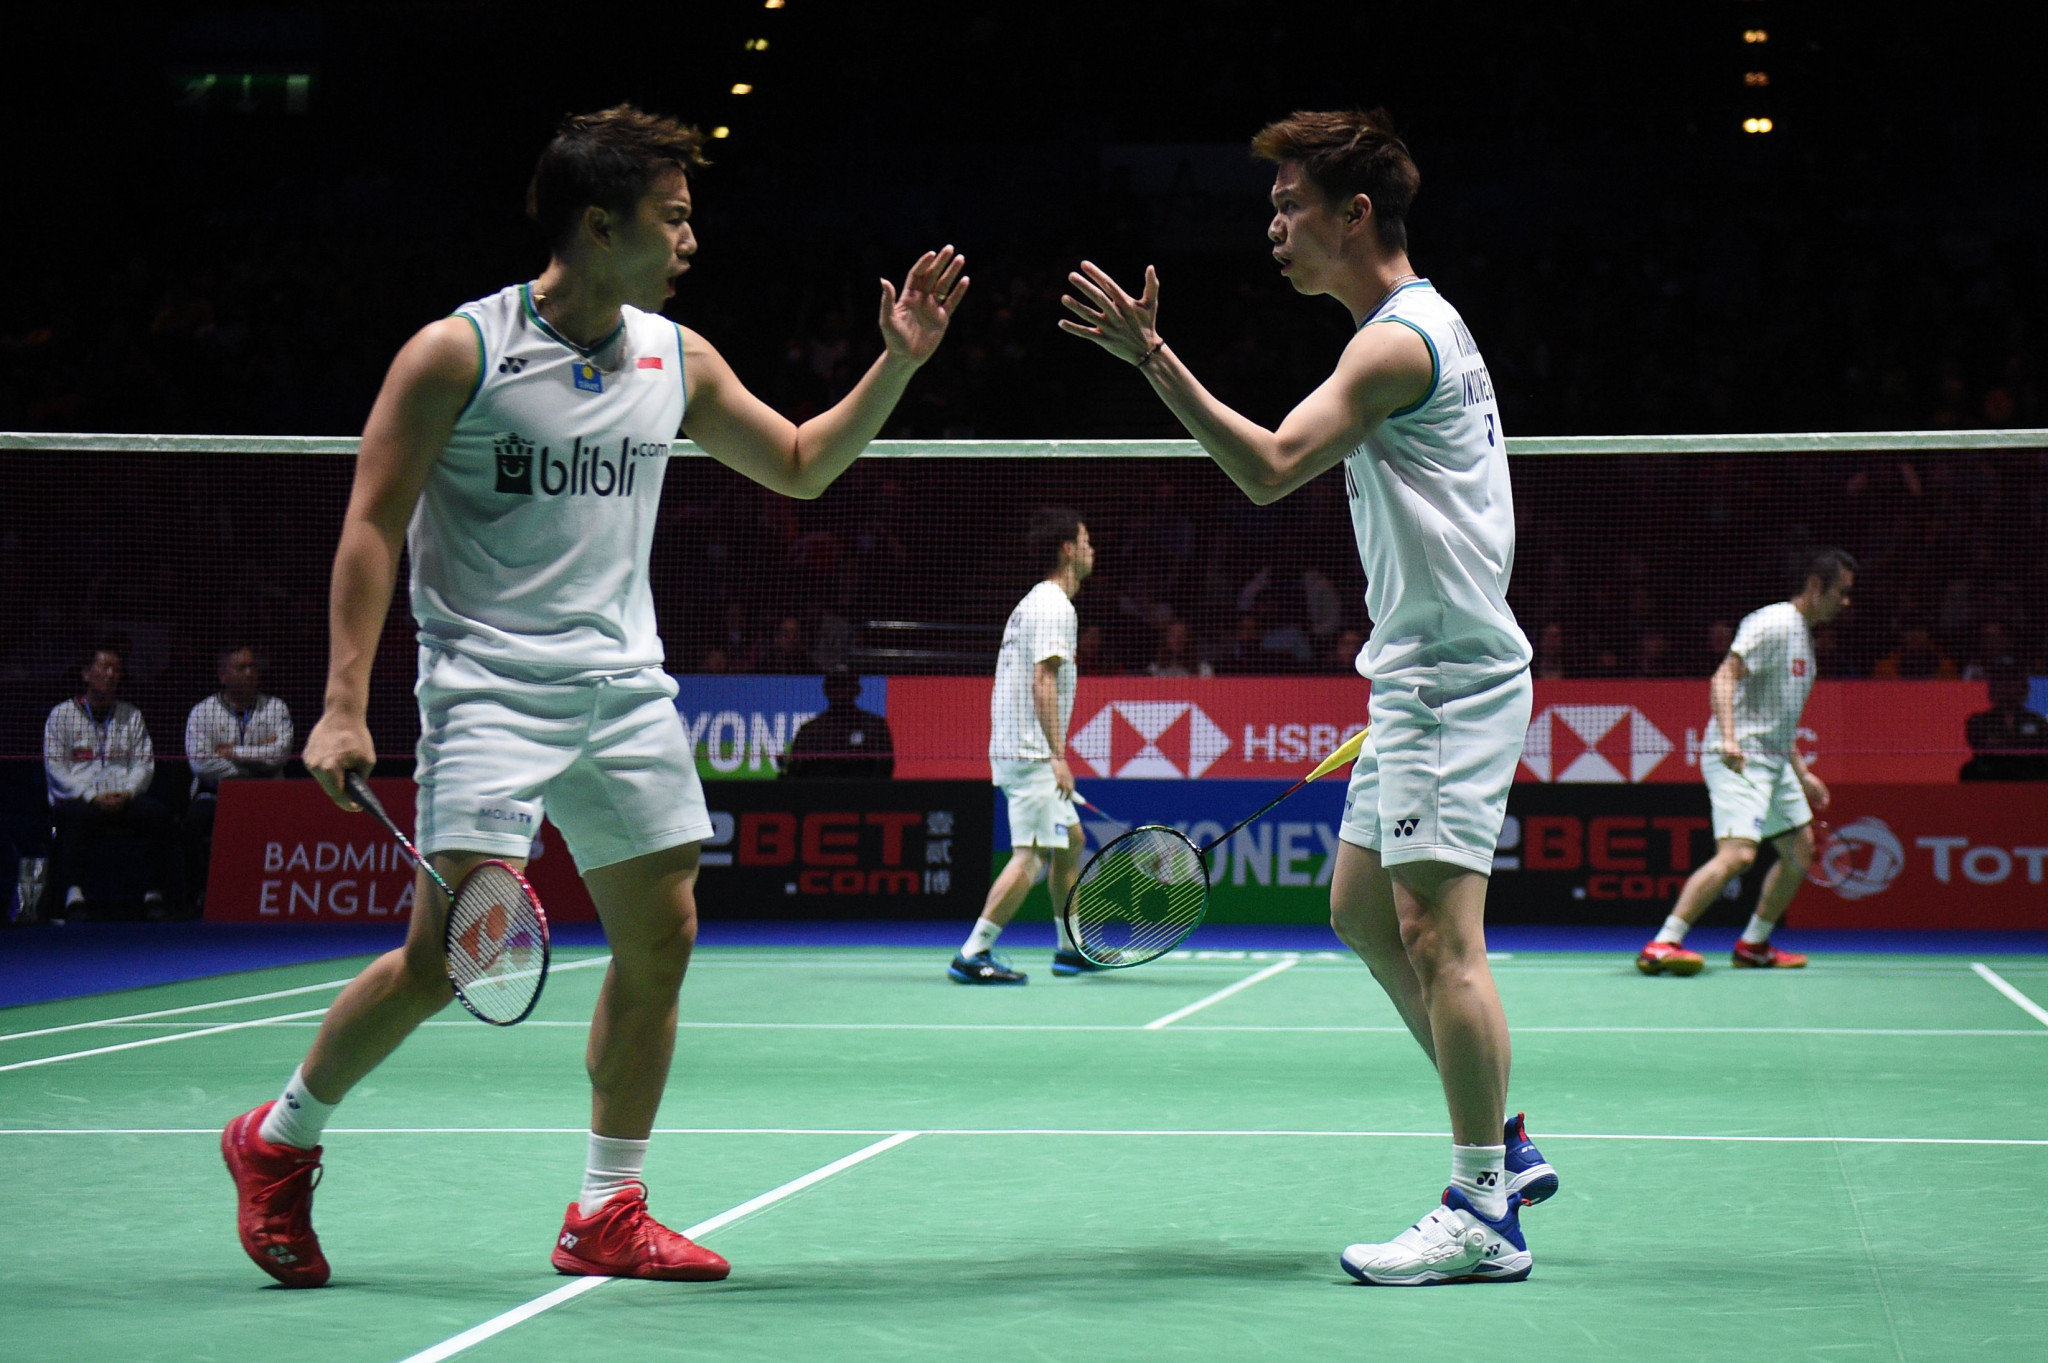 World number one doubles pair withdraw from BWF World Tour Finals after positive COVID-19 test